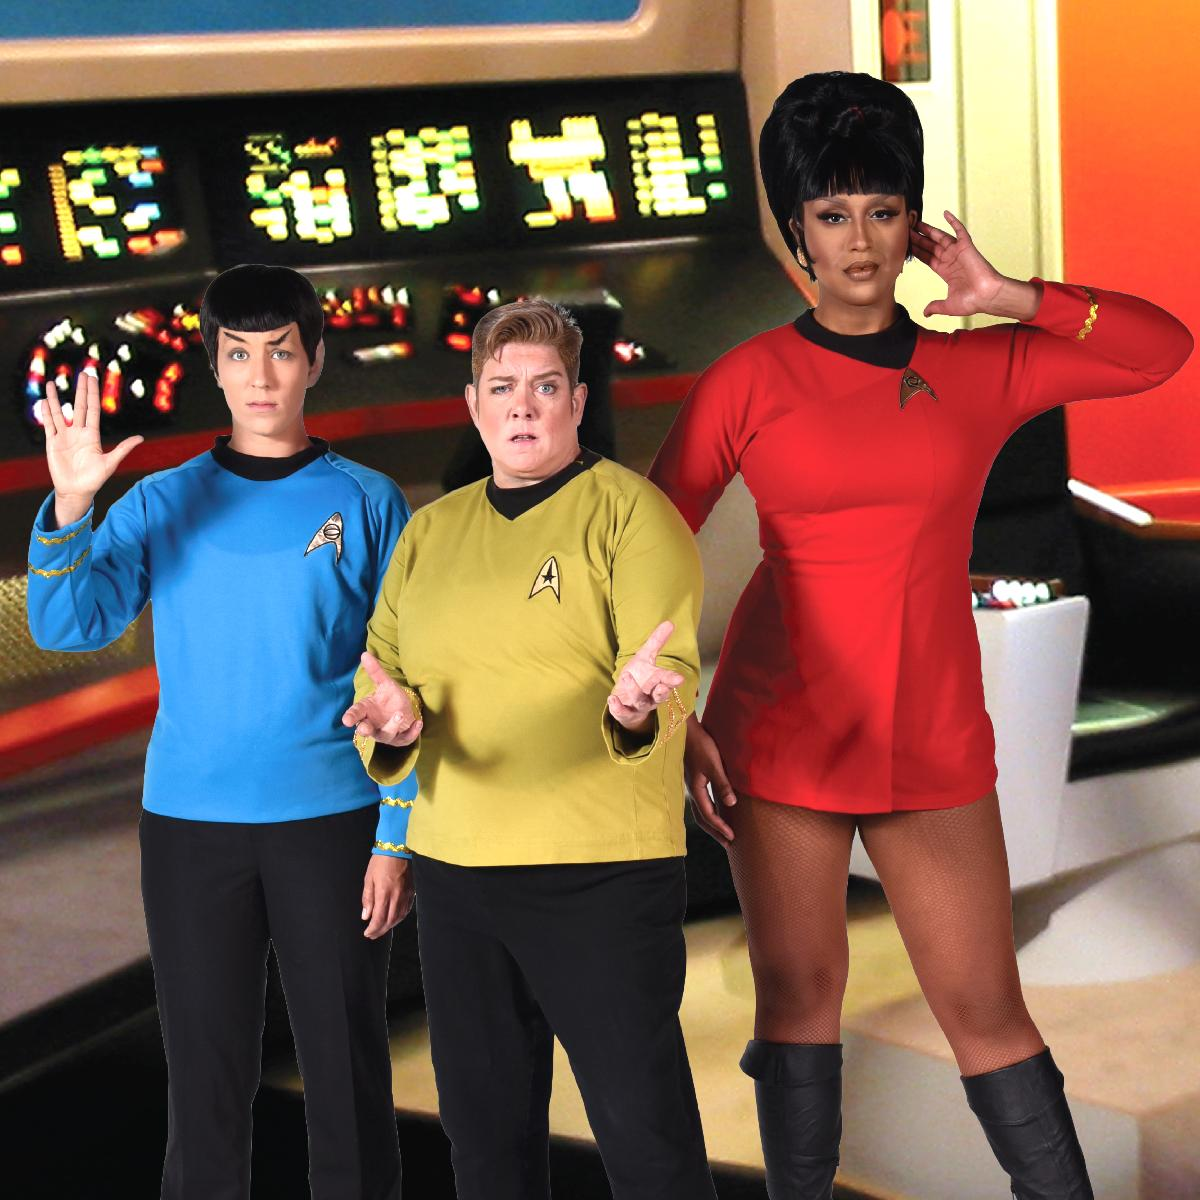 Amber Sommerfeld as Spock, Leigh Crow as Captain Kirk, and Honey Mahogany as Uhura